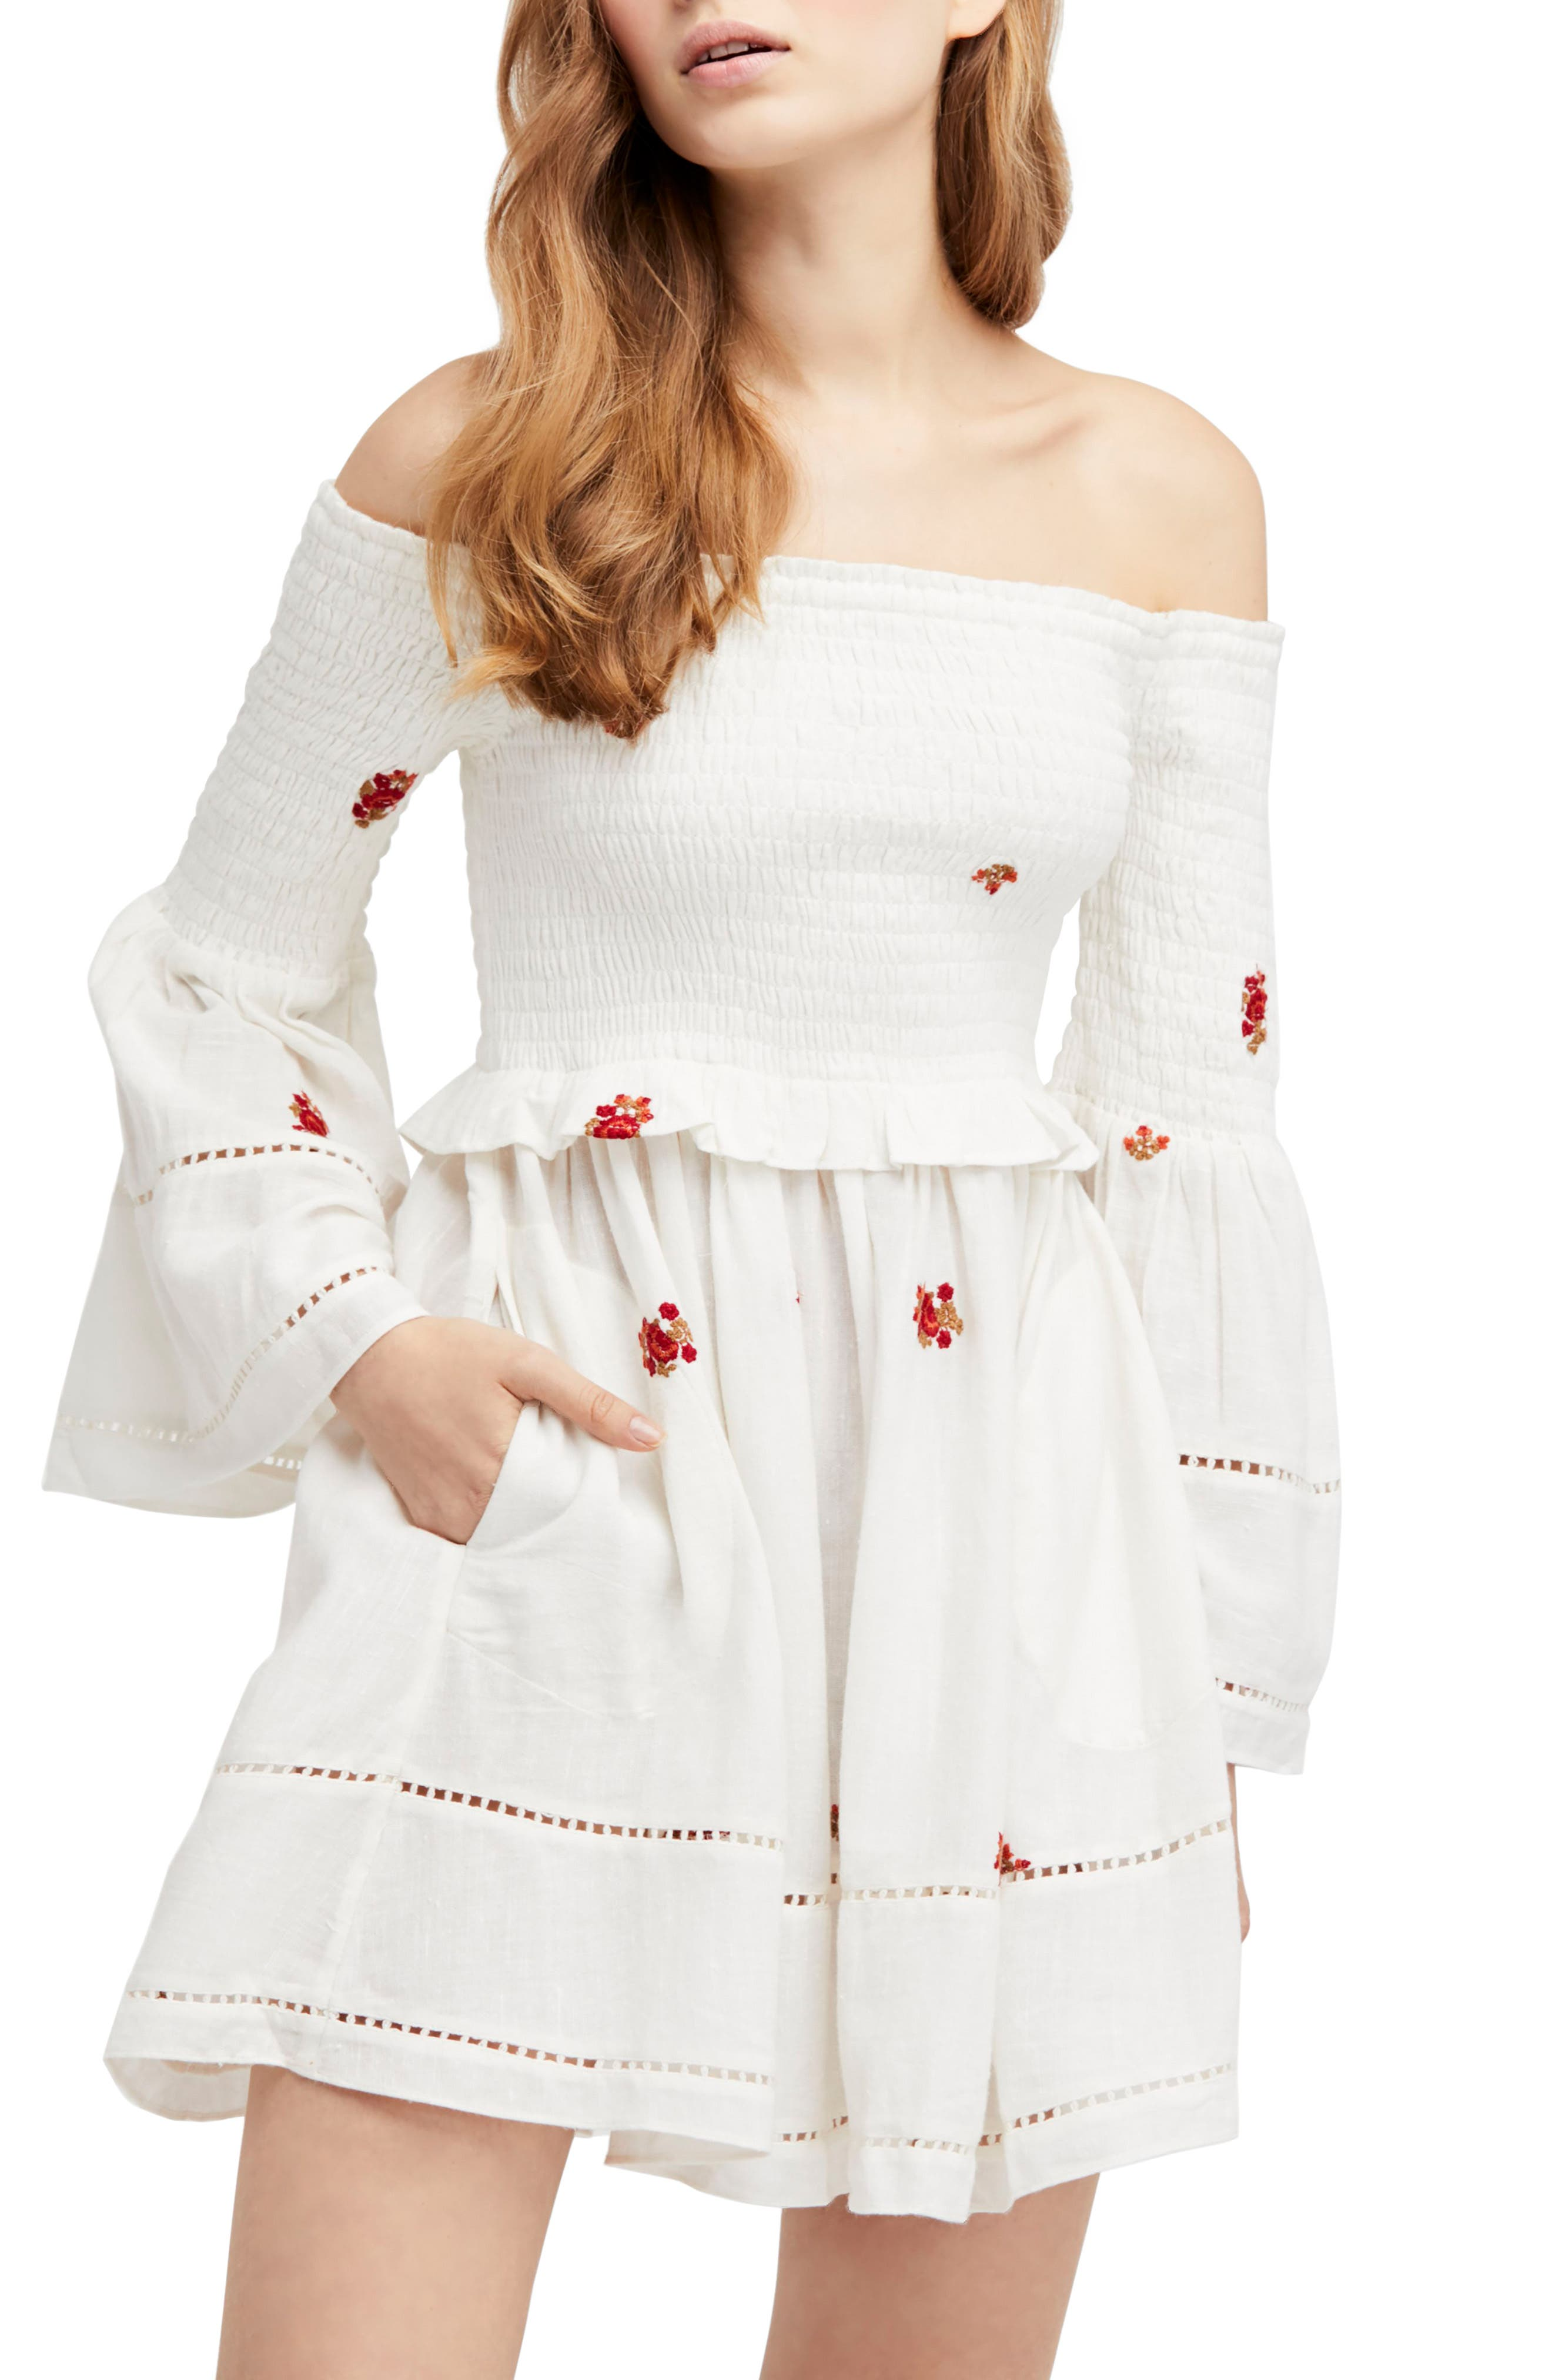 Counting Daisies Embroidered Off the Shoulder Dress,                         Main,                         color, Ivory Combo